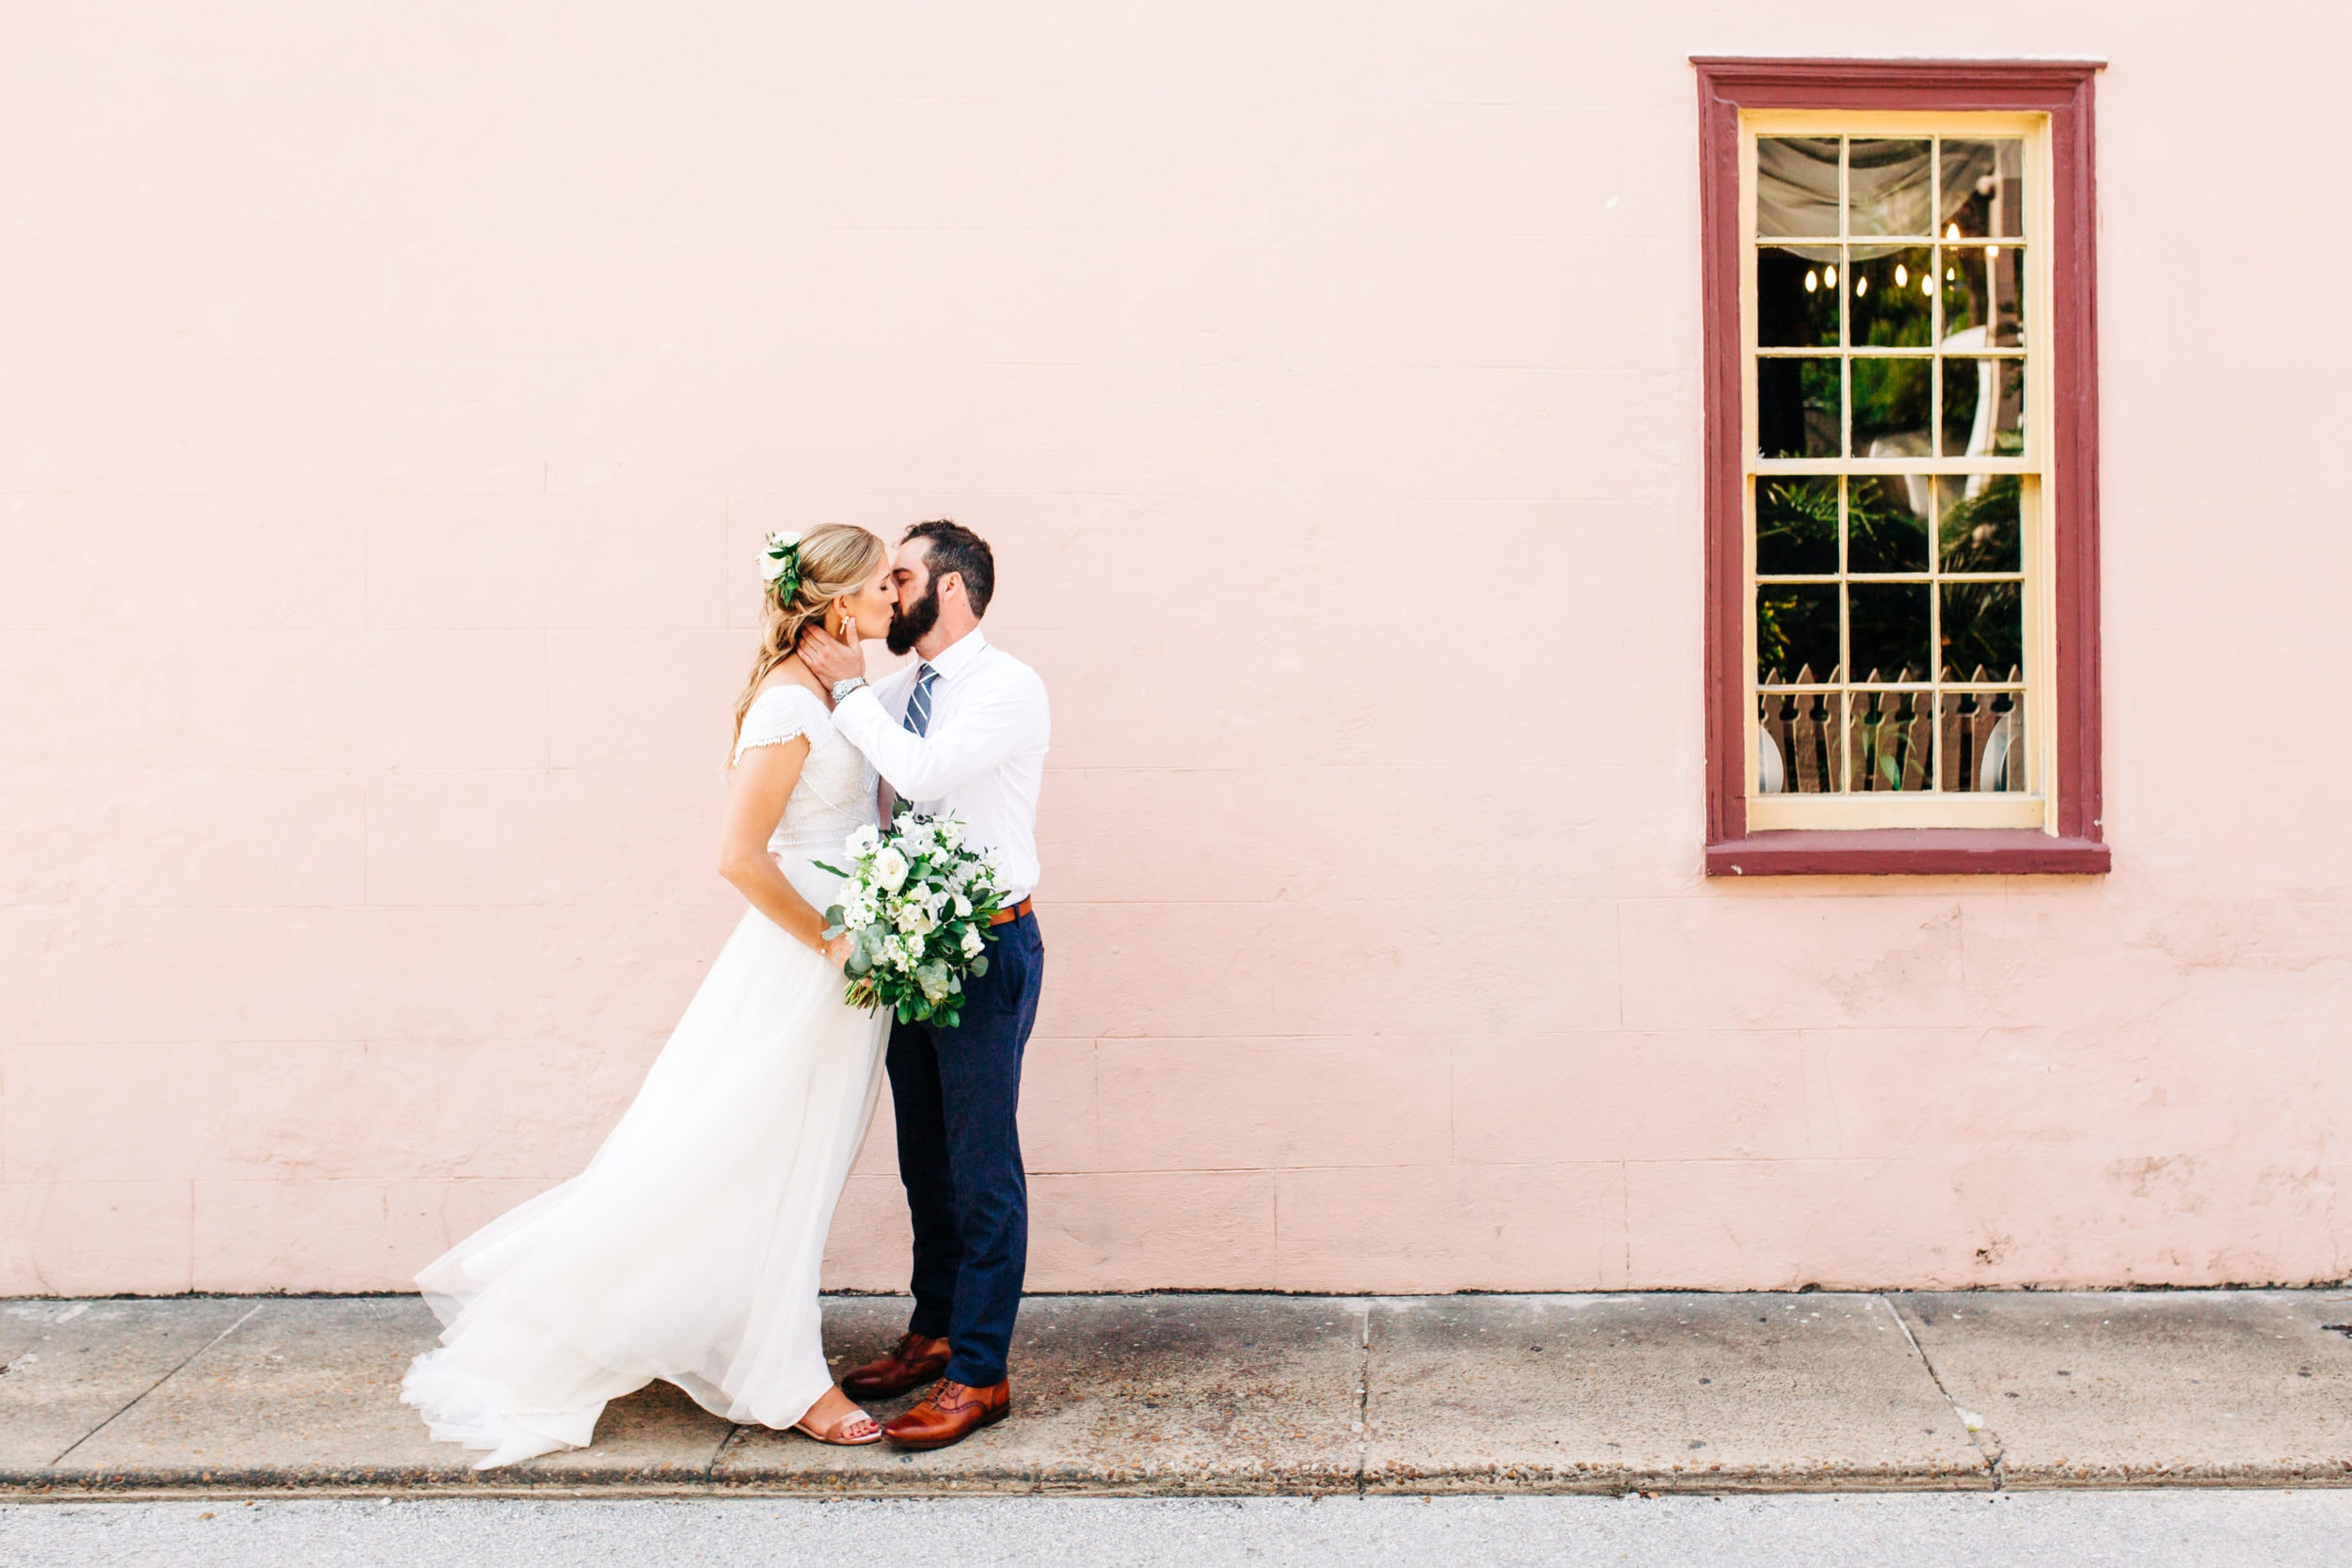 bride and groom kissing in front of pink wall in saint Augustine florida with dress fluttering in background and red side window